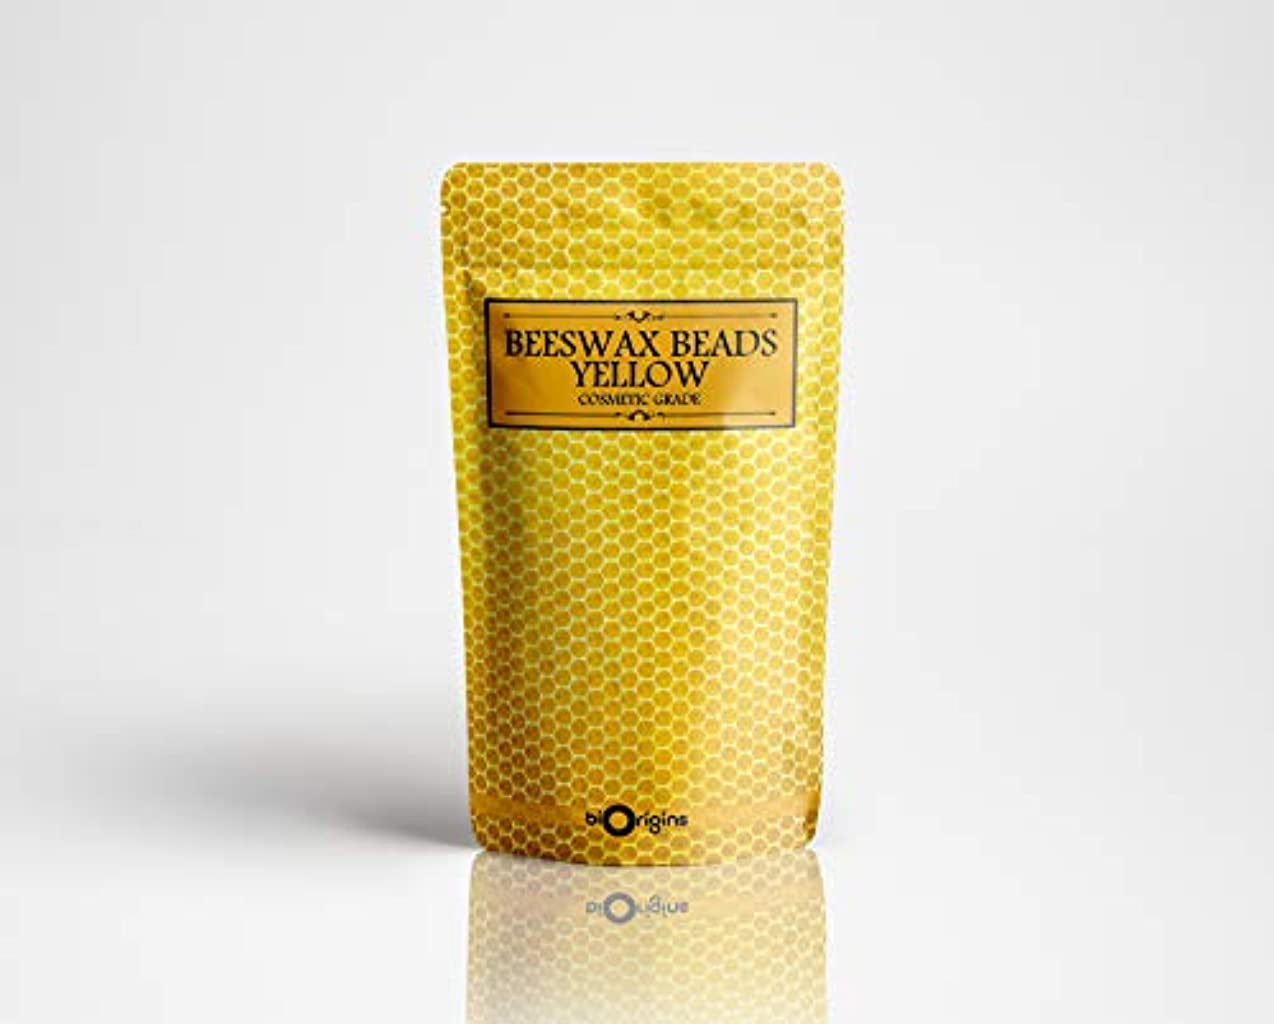 成功トースト類推Beeswax Beads Yellow - Cosmetic Grade - 100g